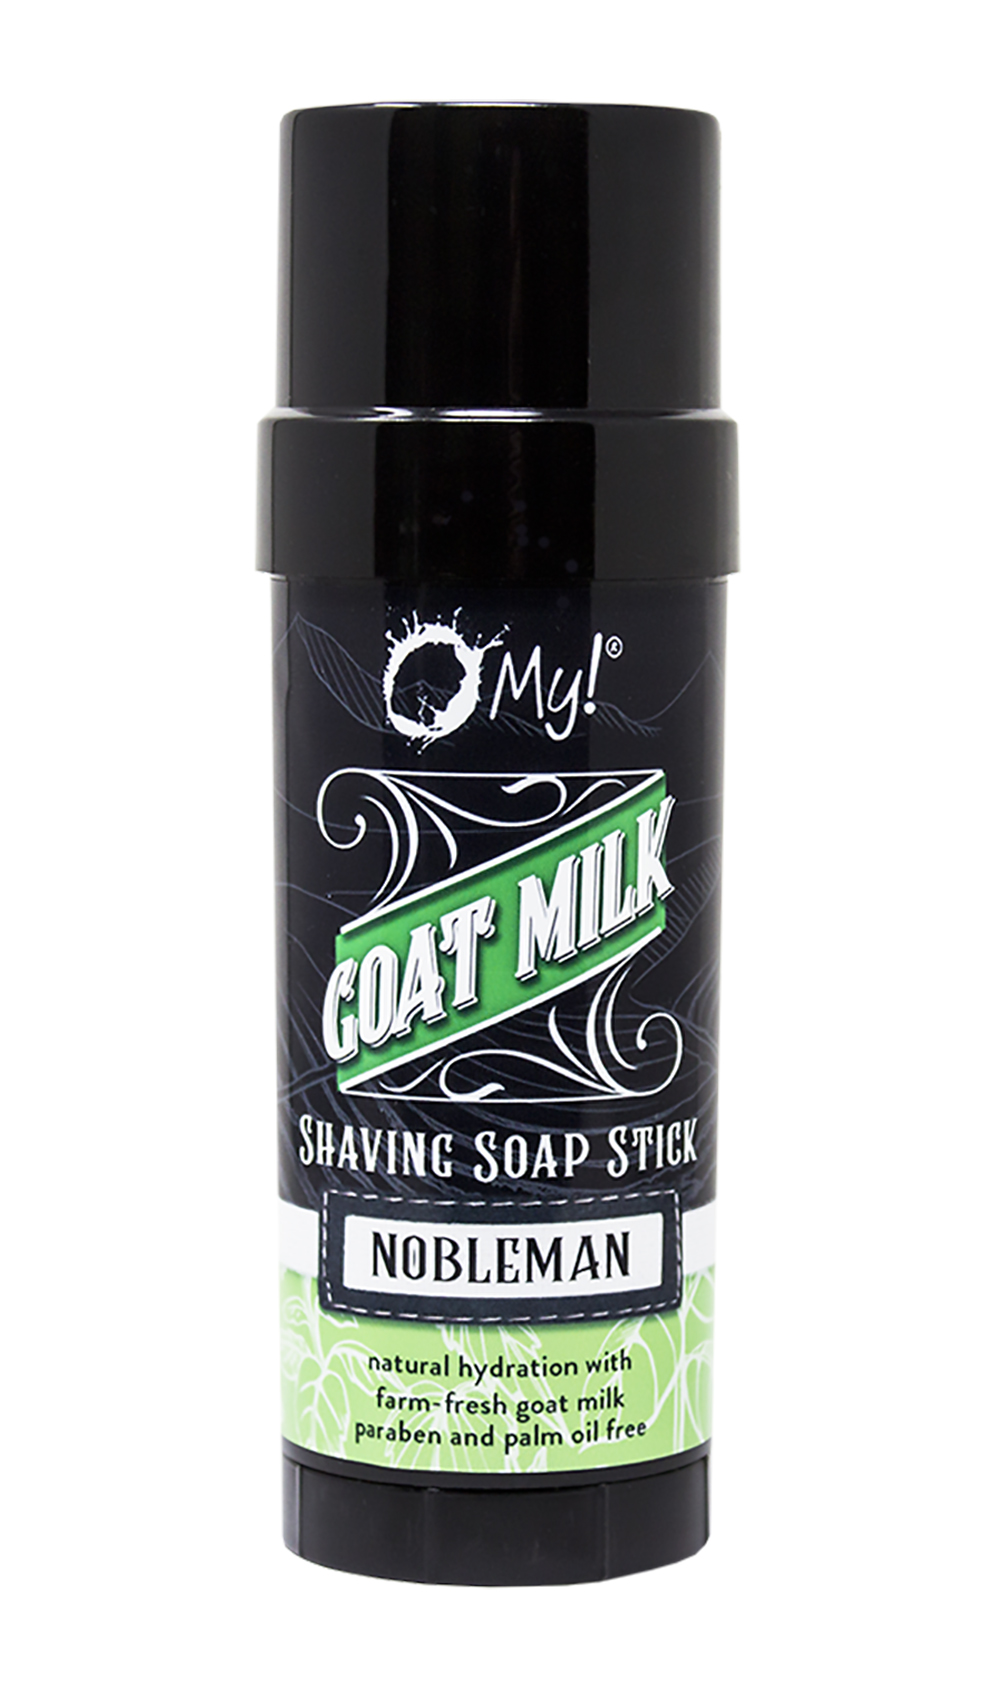 O My! Goat Milk Shaving Soap Stick 2.25oz - Nobleman | Goat Milk Wet-shave on the Road | No Bowl or Mug Needed | Shea Butter, Vitamin E | Leaping Bunny Certified | Handmade in USA